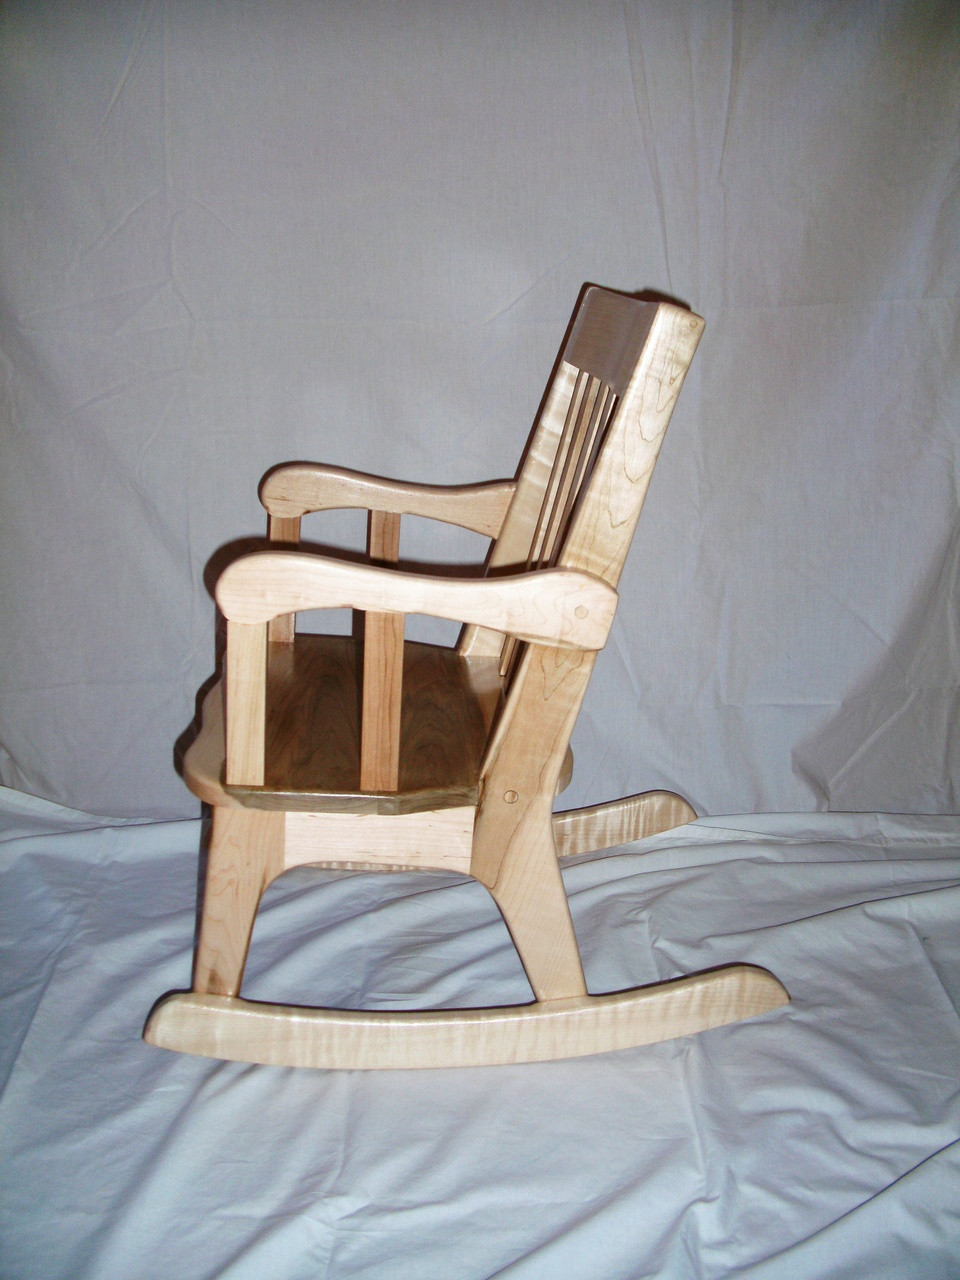 Superb Childs Rocking Chair Gmtry Best Dining Table And Chair Ideas Images Gmtryco